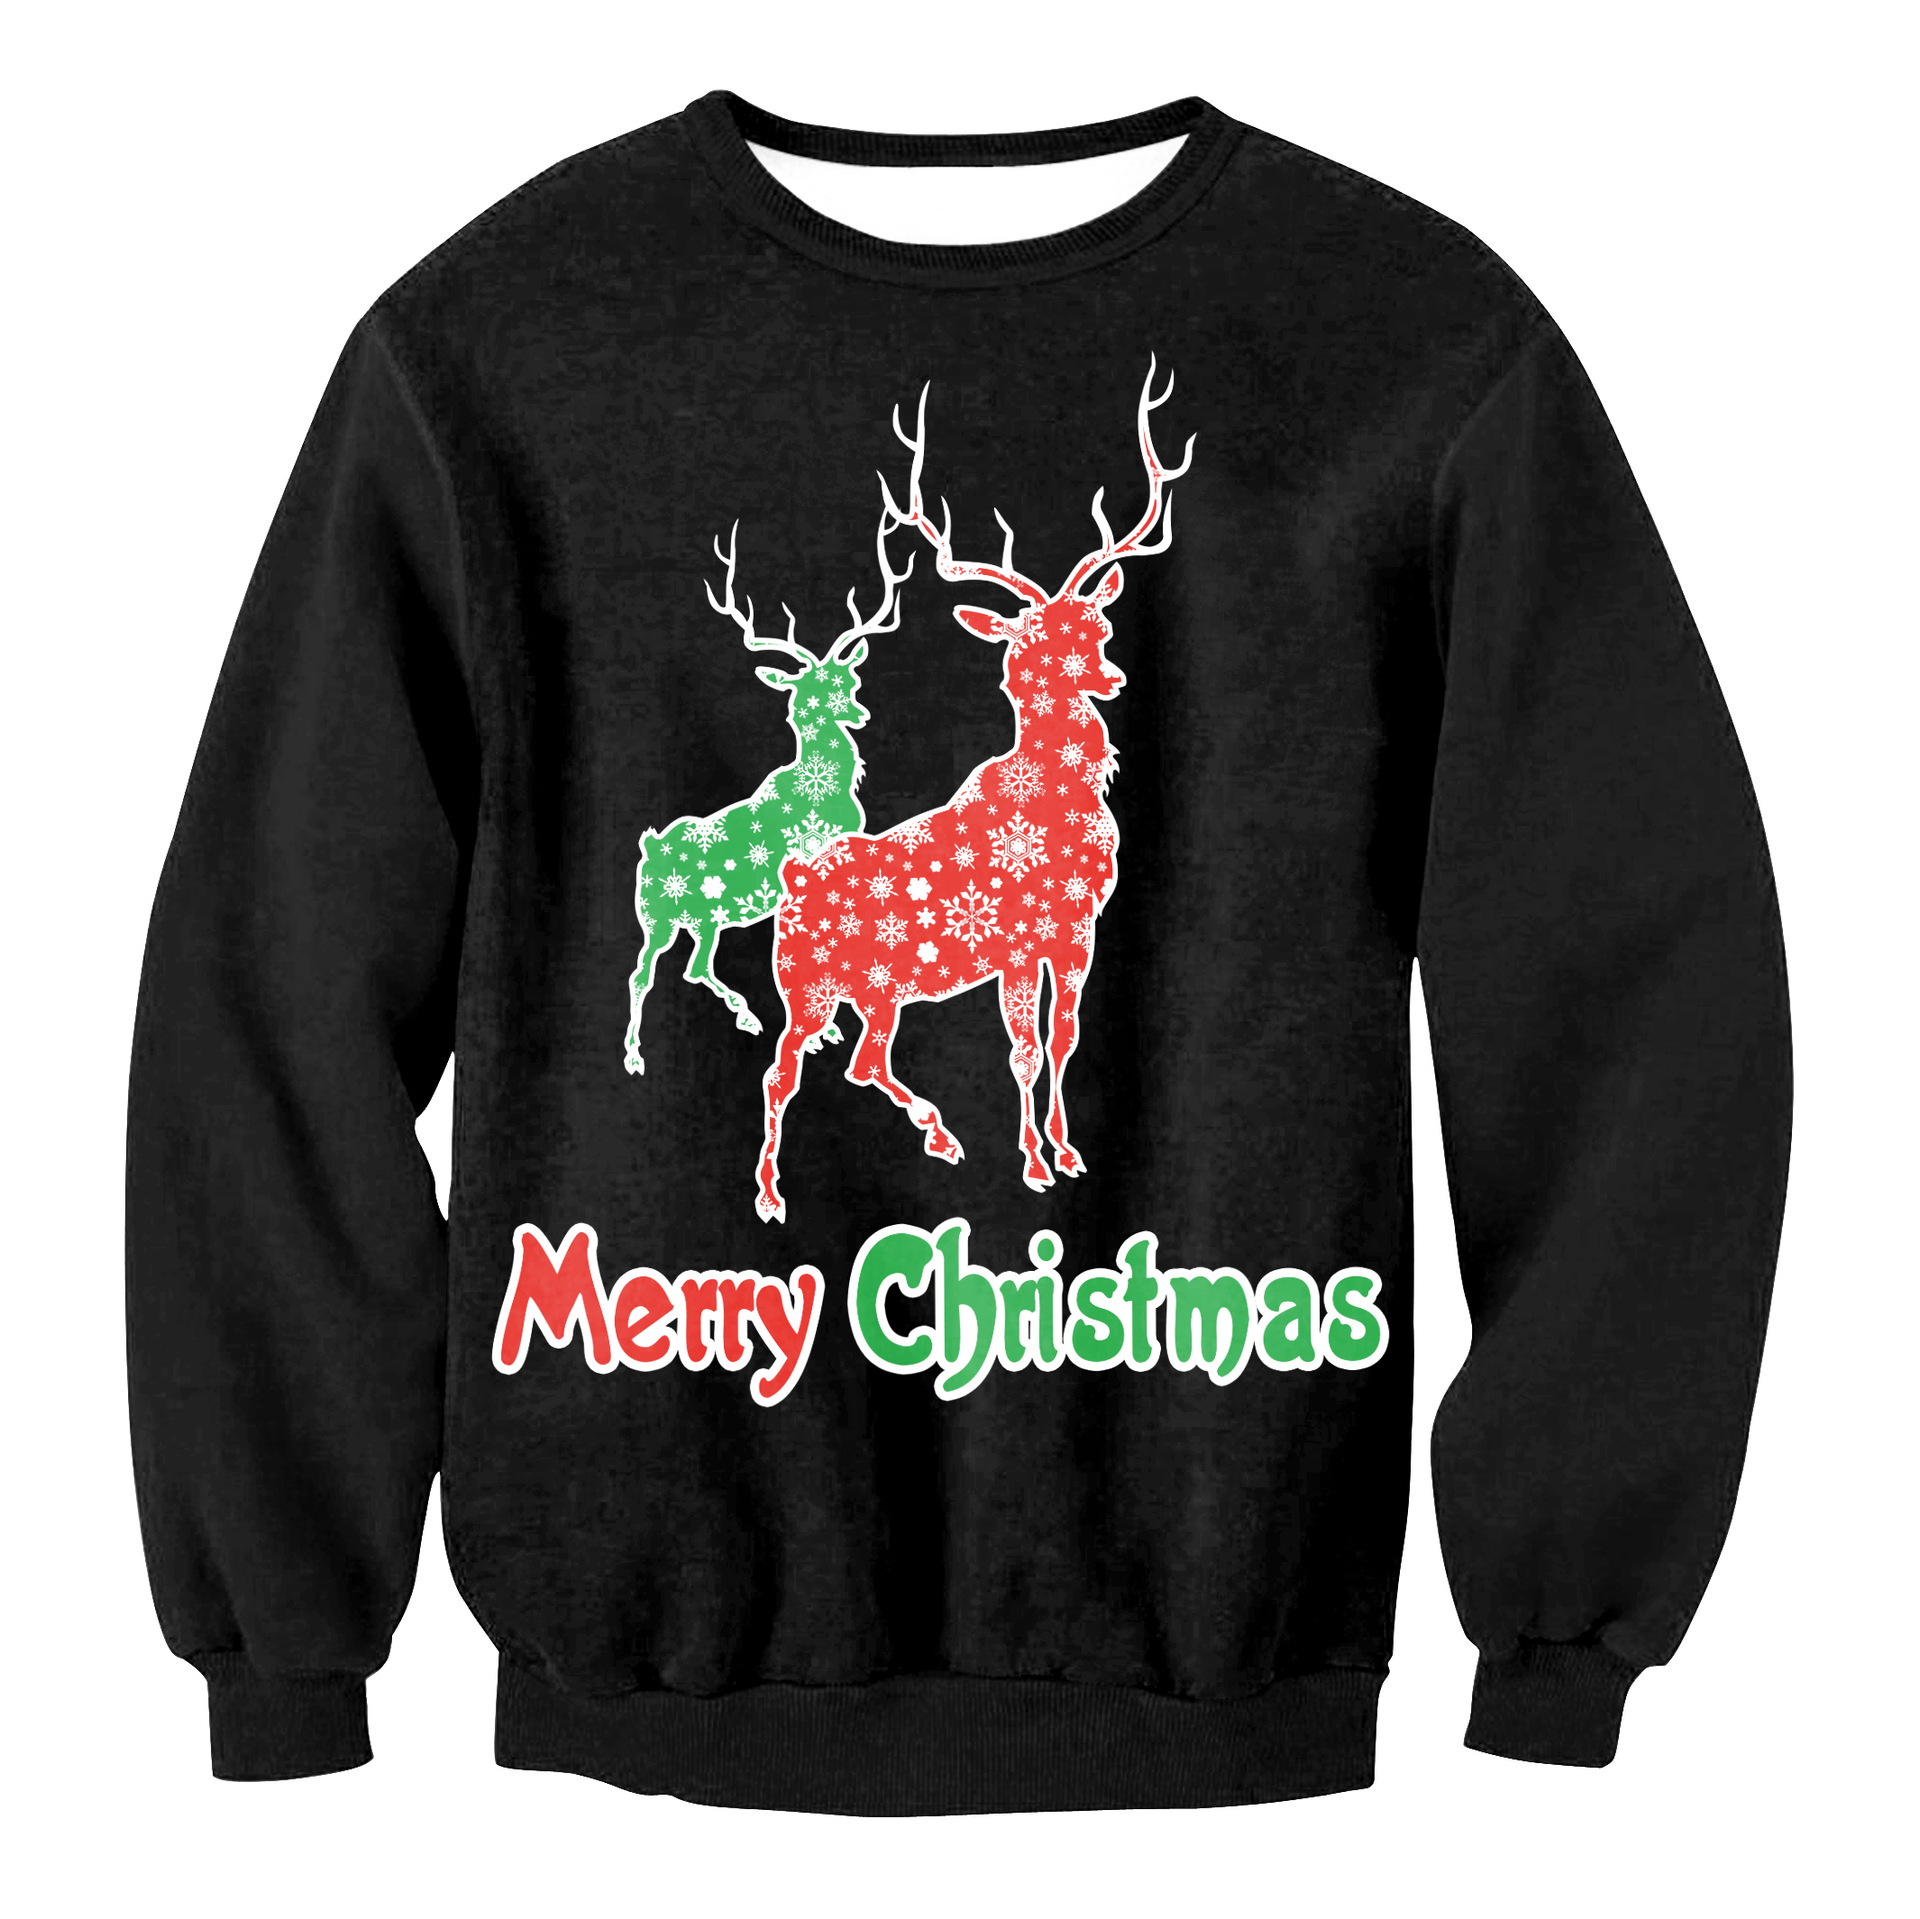 3D Elk Print Xmas Sweaters Ugly Christmas Sweater Couple Matching Clothes Uniex Outfits For Ugly Women Men Autumn Winter NEW